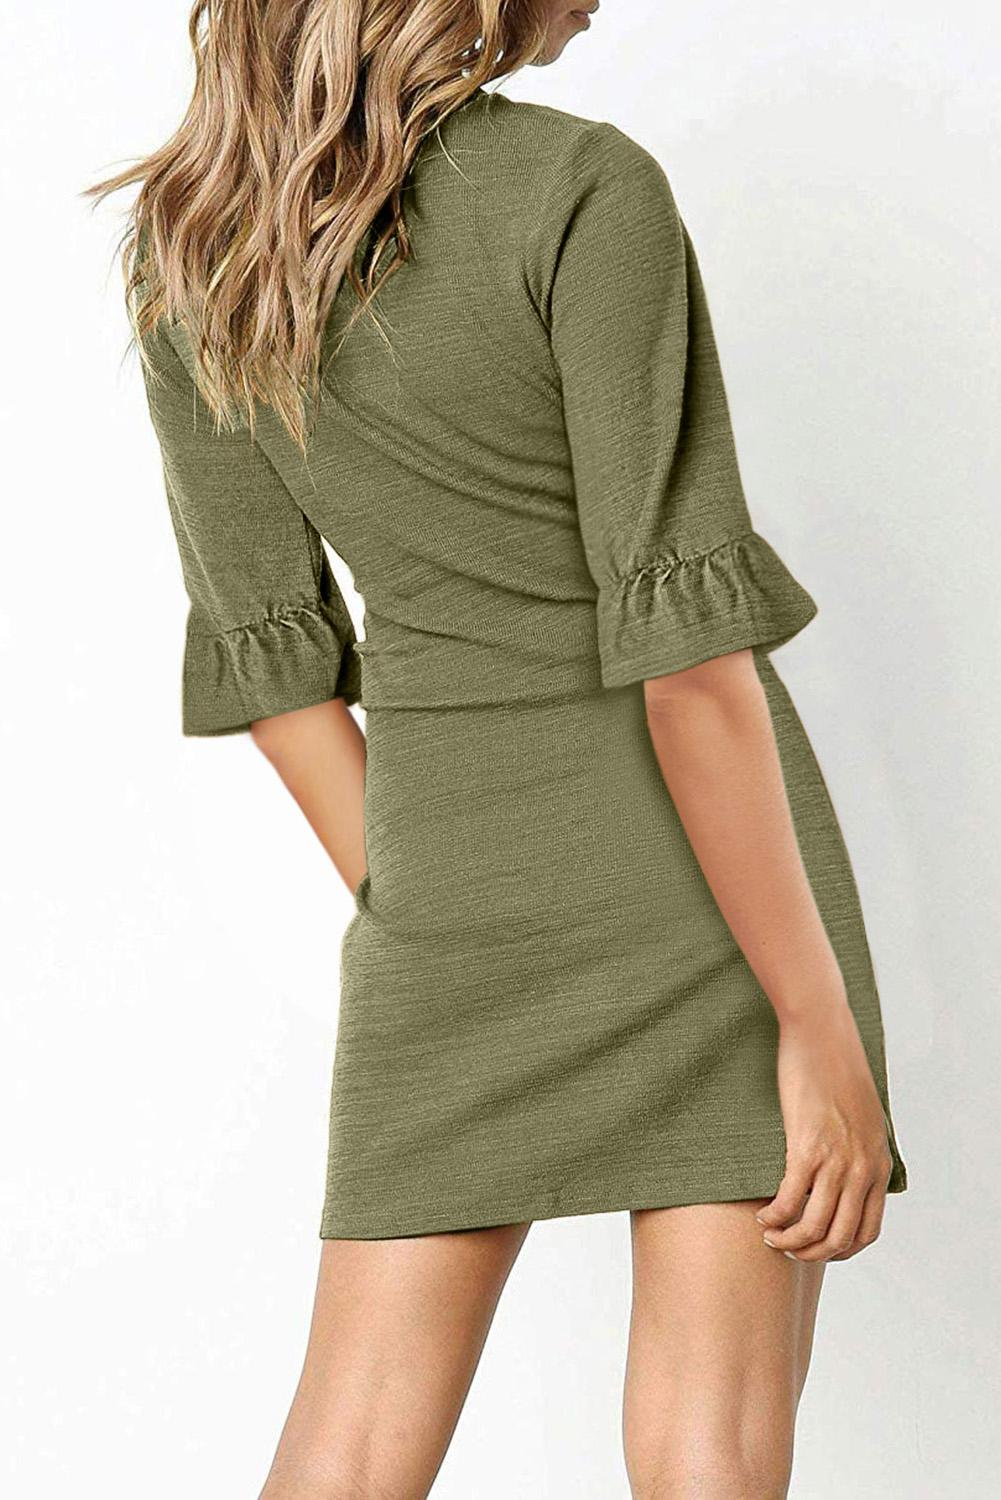 Green V Neck Ruffled Sleeves Waist Tie Mini Dress Mini Dresses Discount Designer Fashion Clothes Shoes Bags Women Men Kids Children Black Owned Business